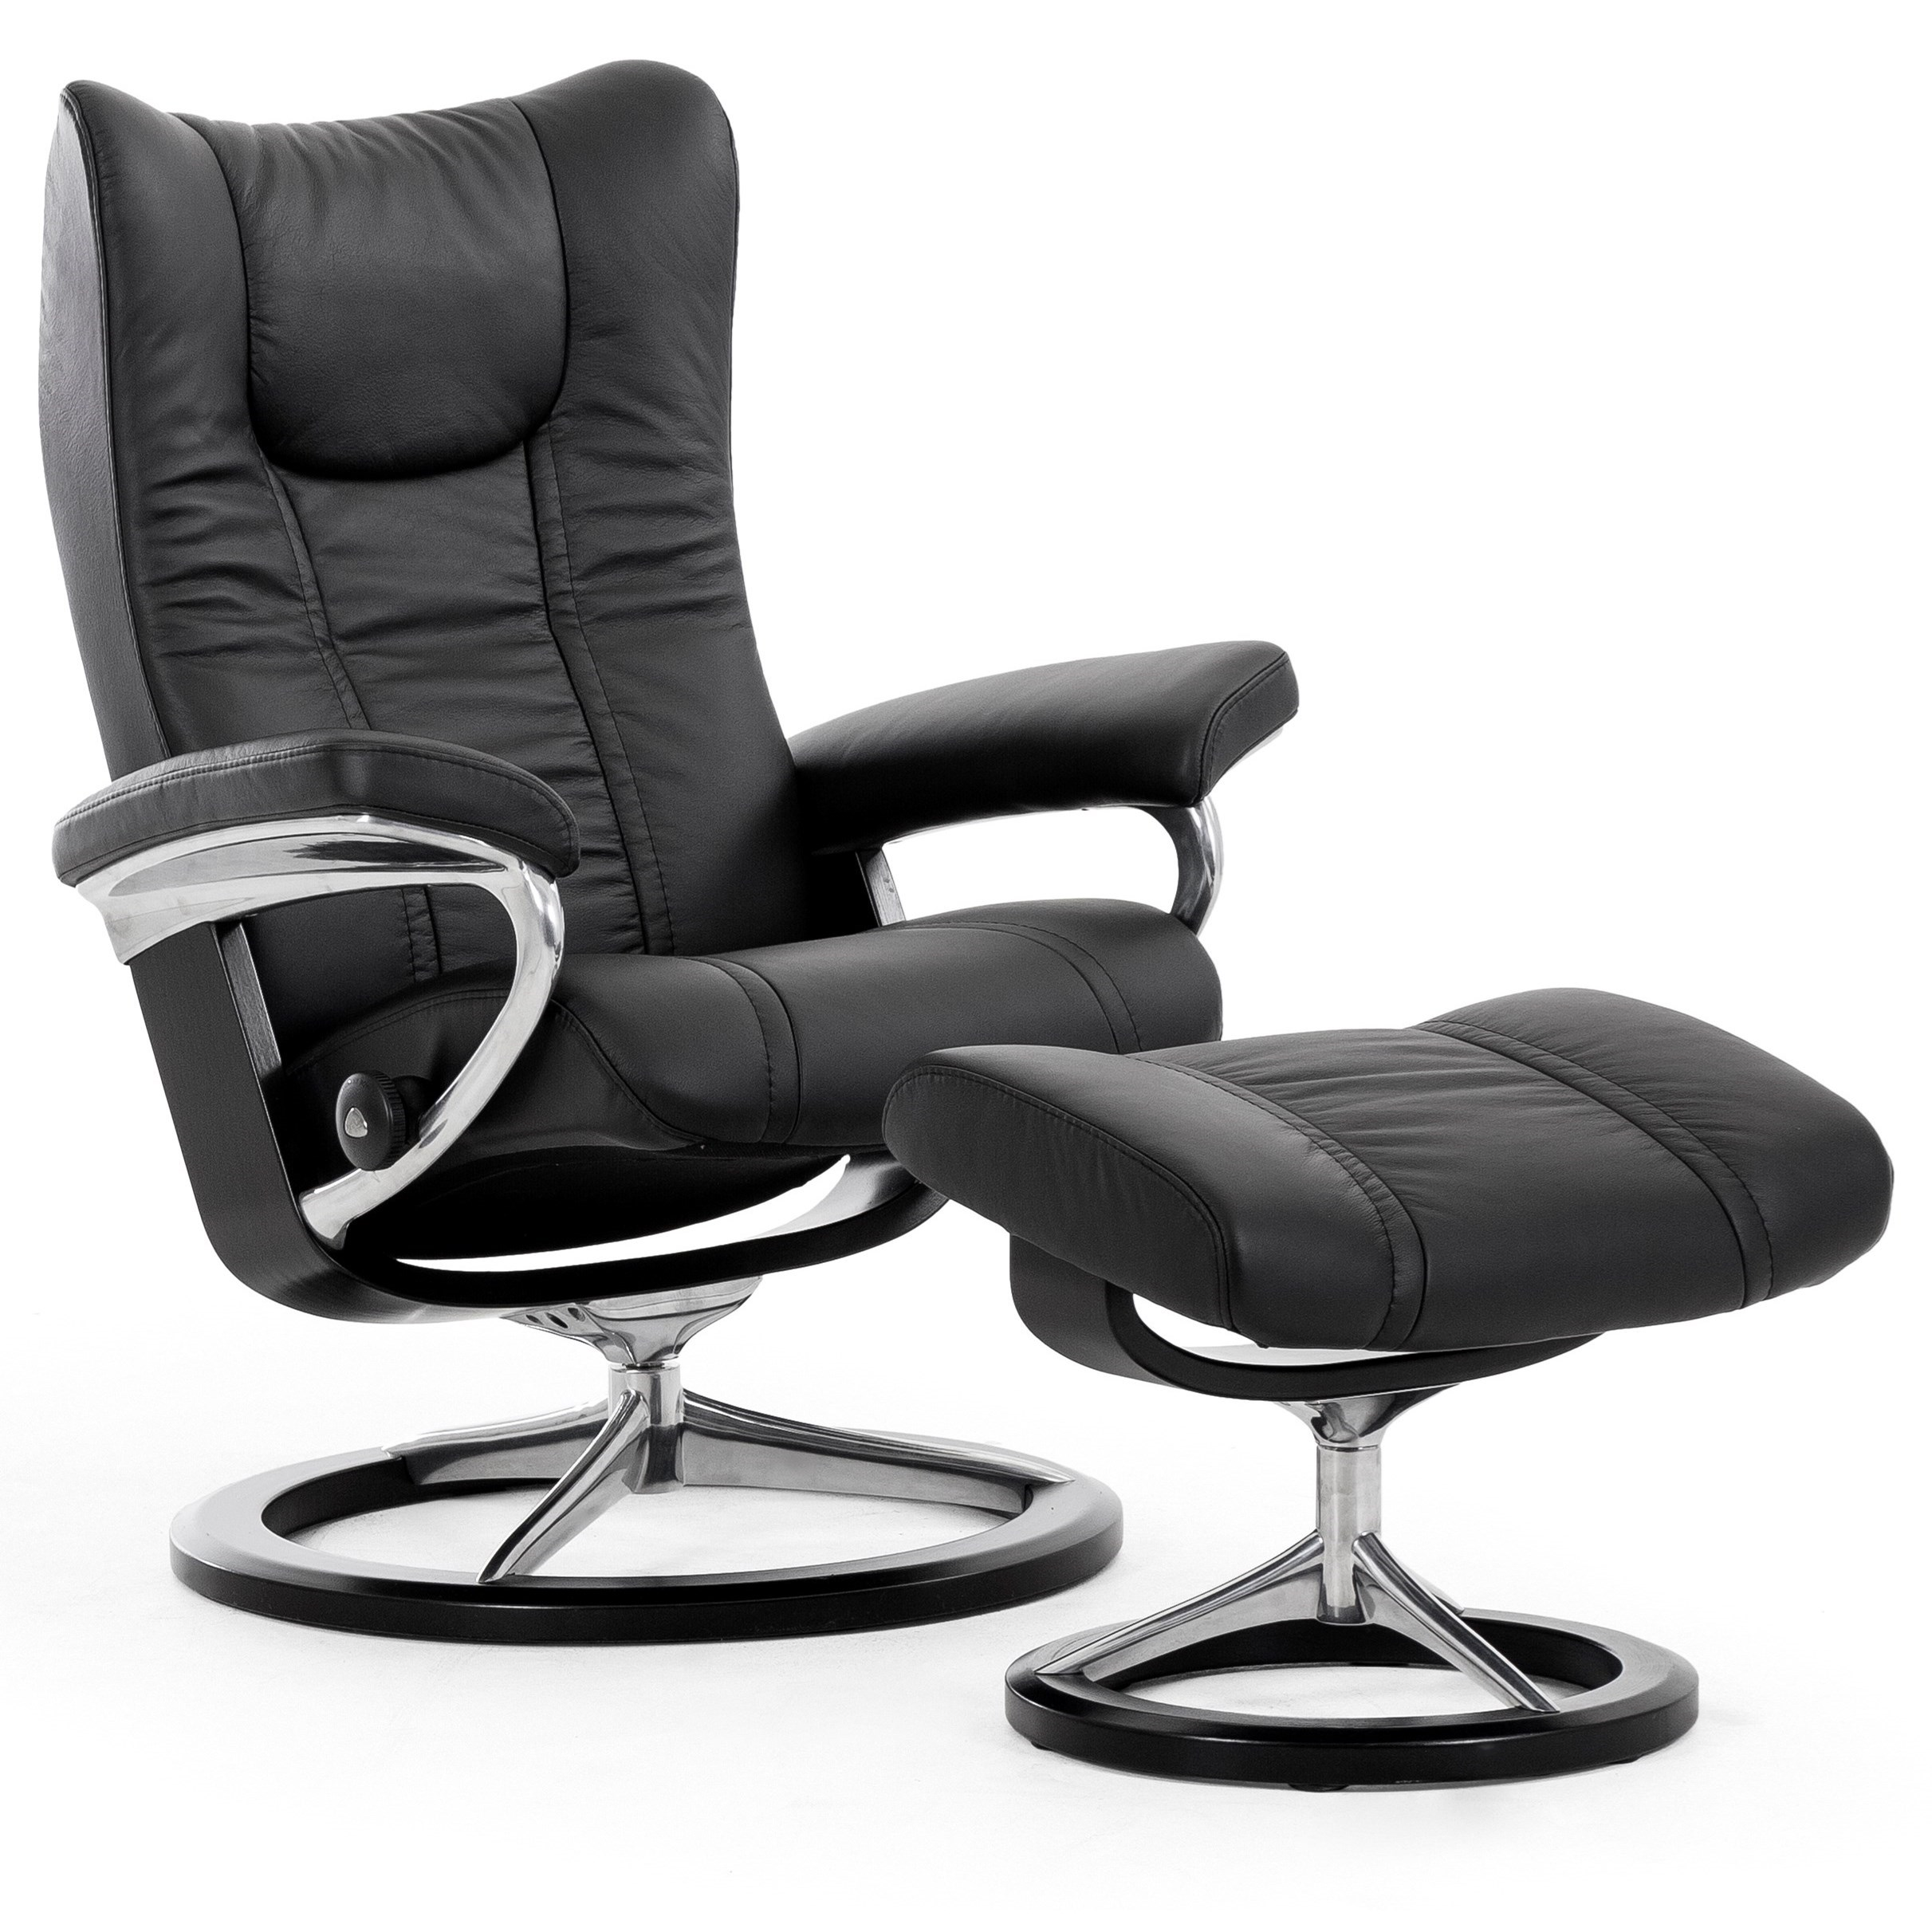 Stressless Wing Small Reclining Chair and Ottoman with